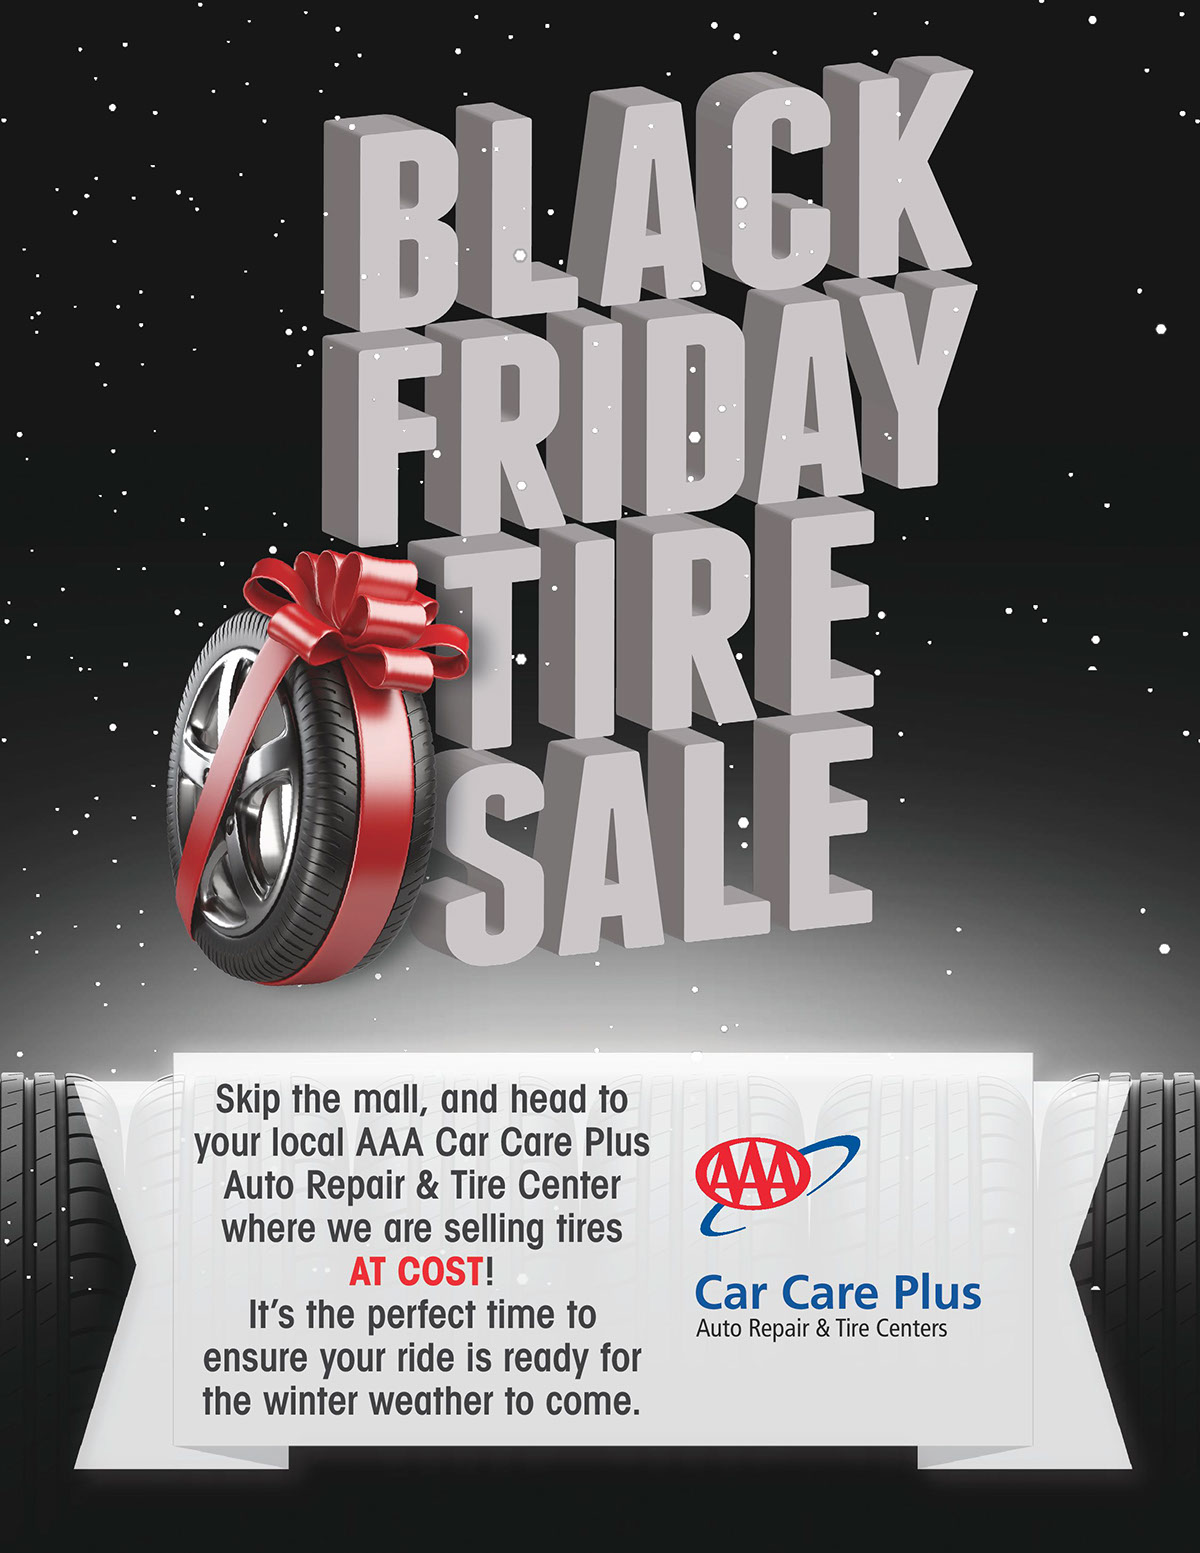 Aaa Black Friday Tire Sale Ad 2015 On Behance